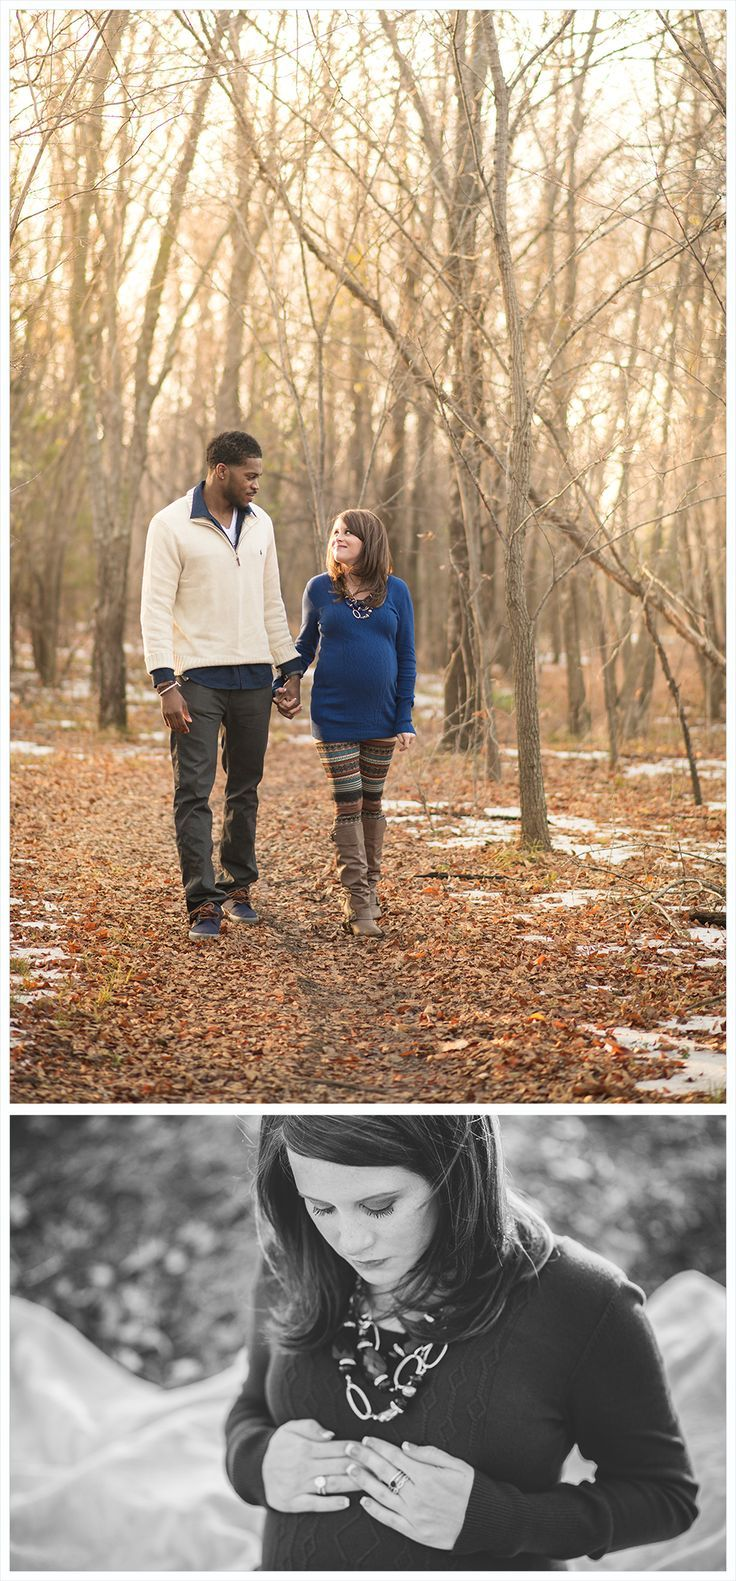 Maternity session, maternity inspiration, maternity pictures, expecting, new mam…